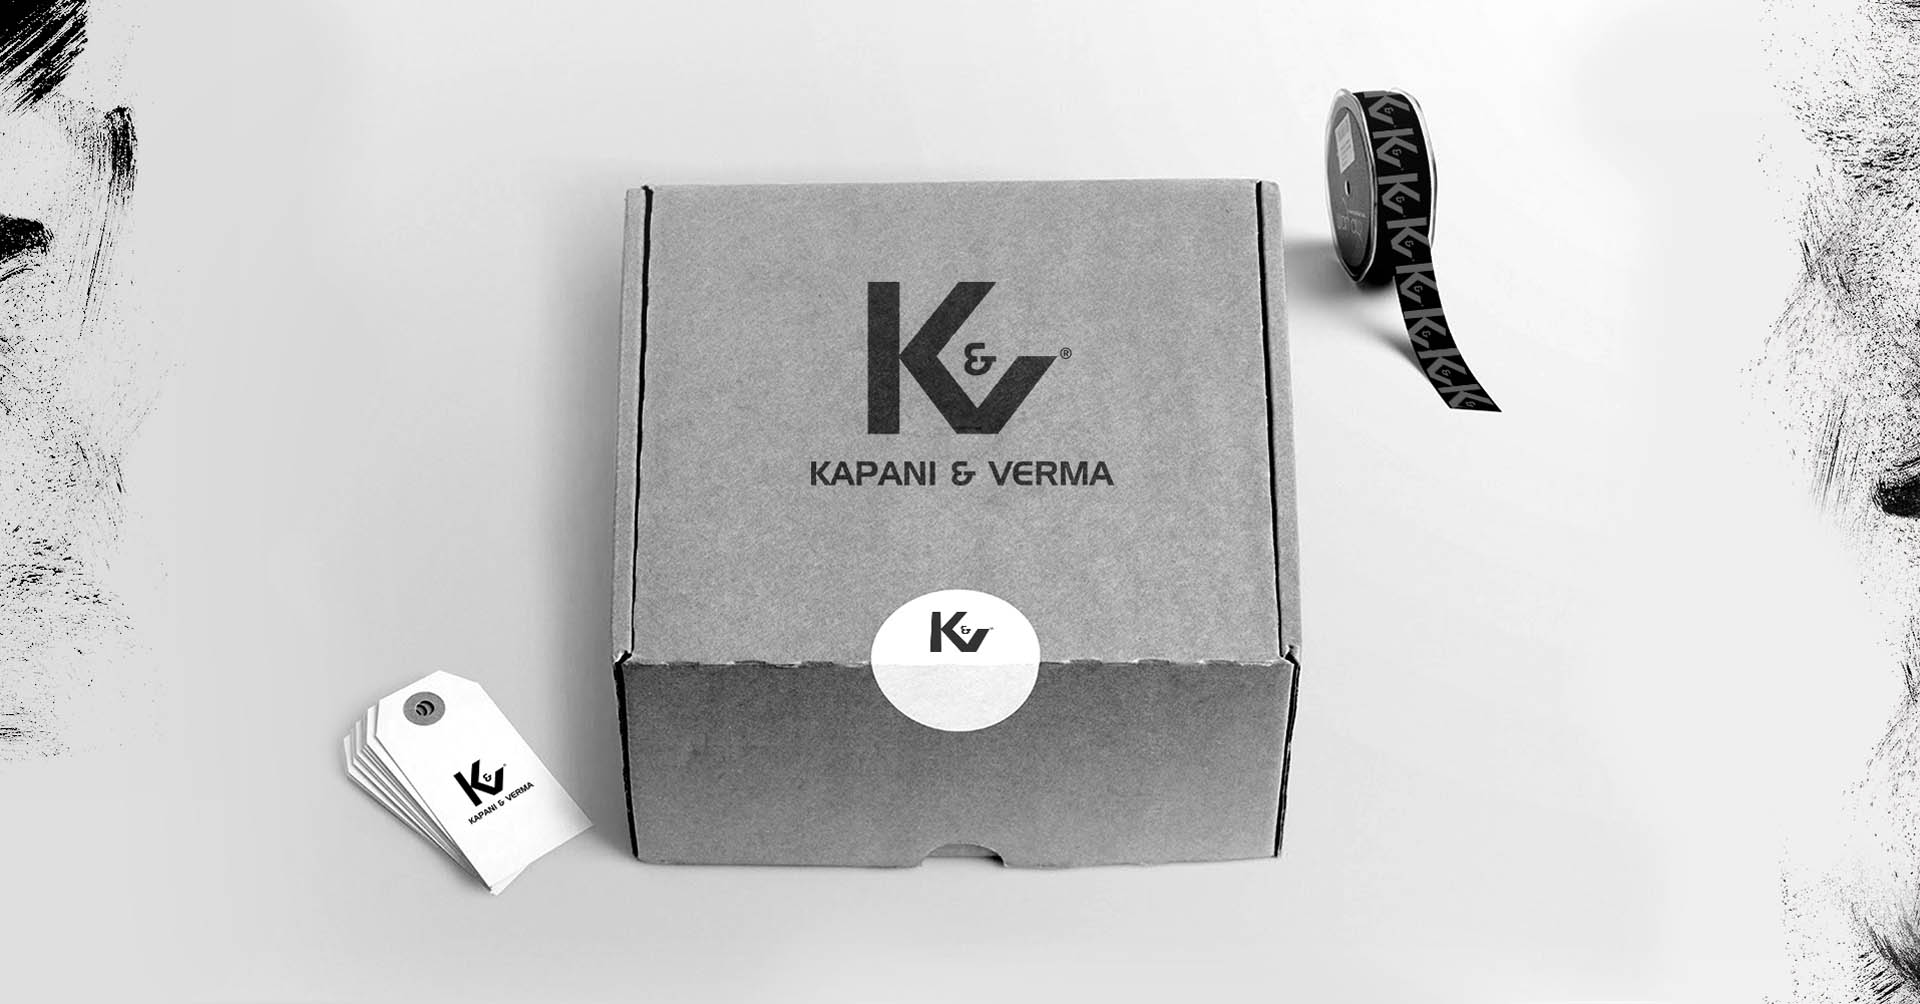 black and white logo on a box